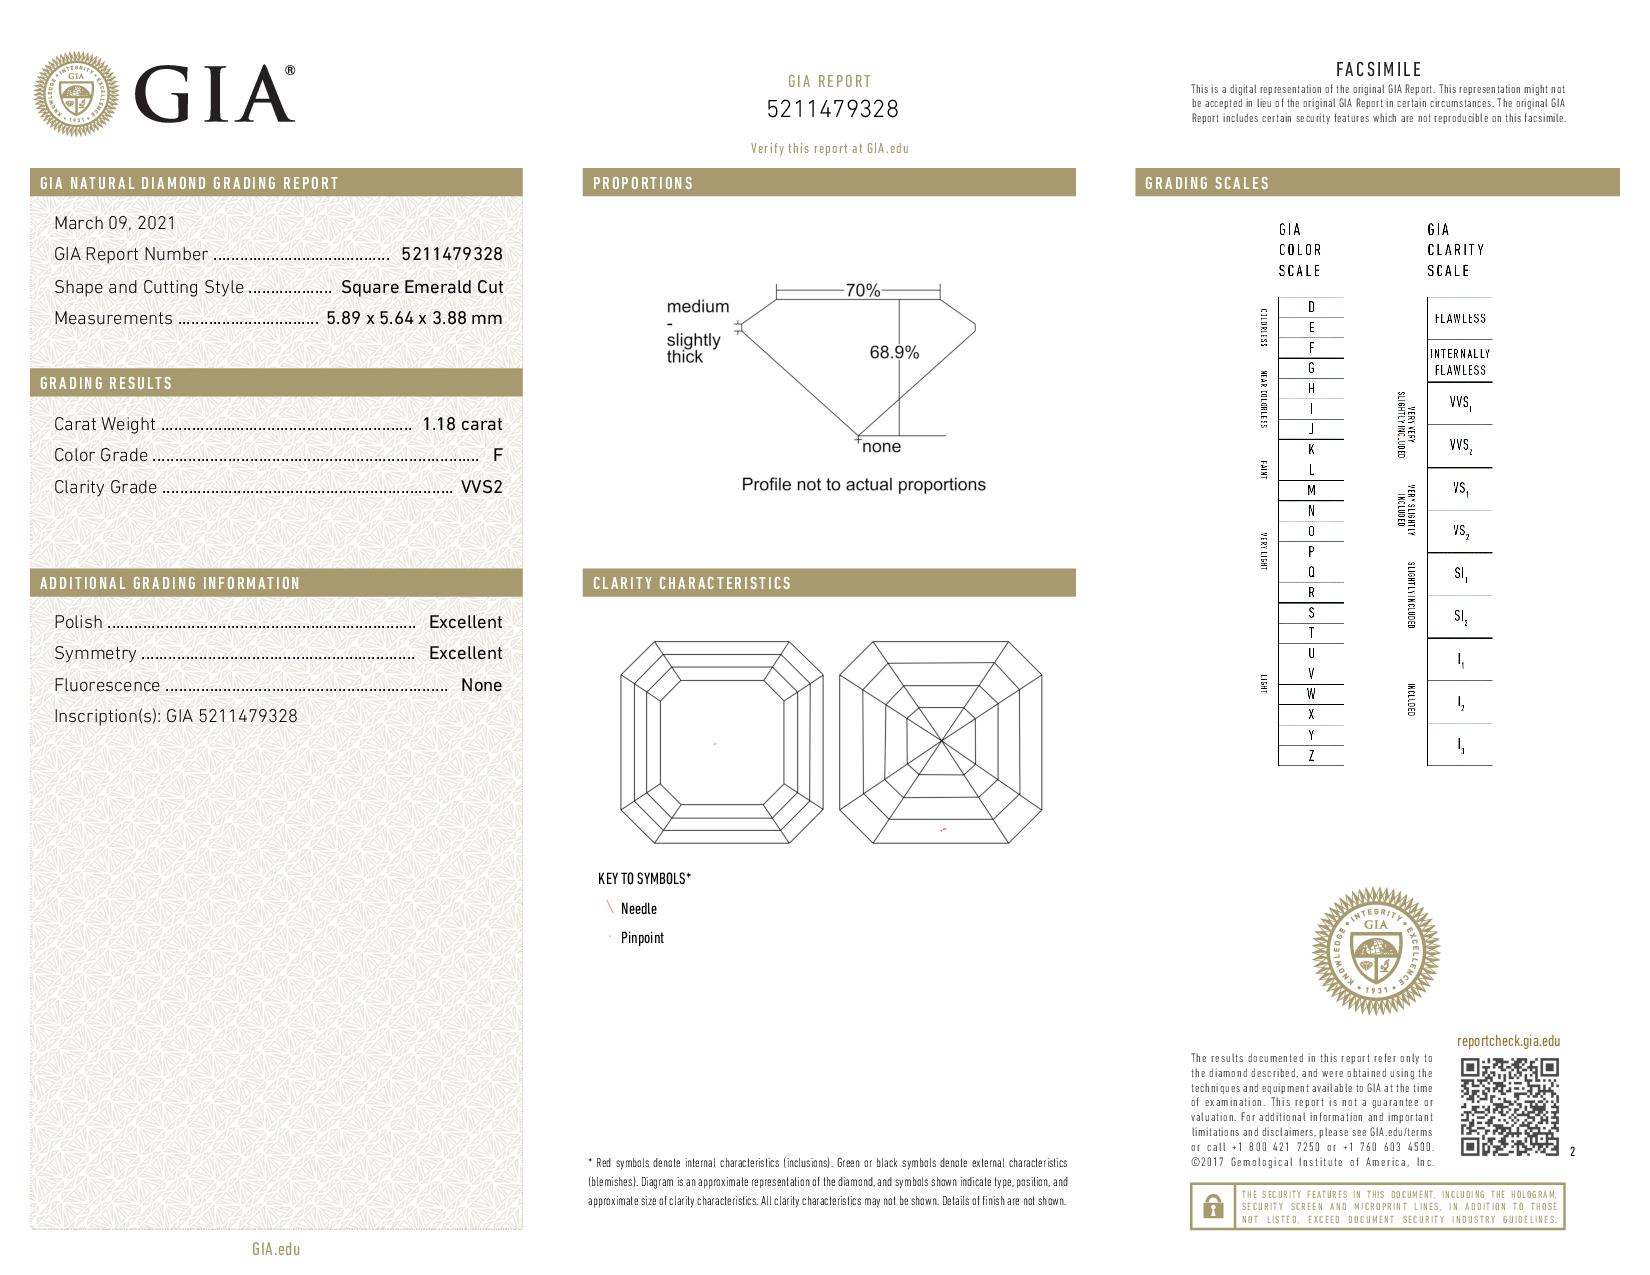 This is a 1.18 carat asscher shape, F color, VVS2 clarity natural diamond accompanied by a GIA grading report.